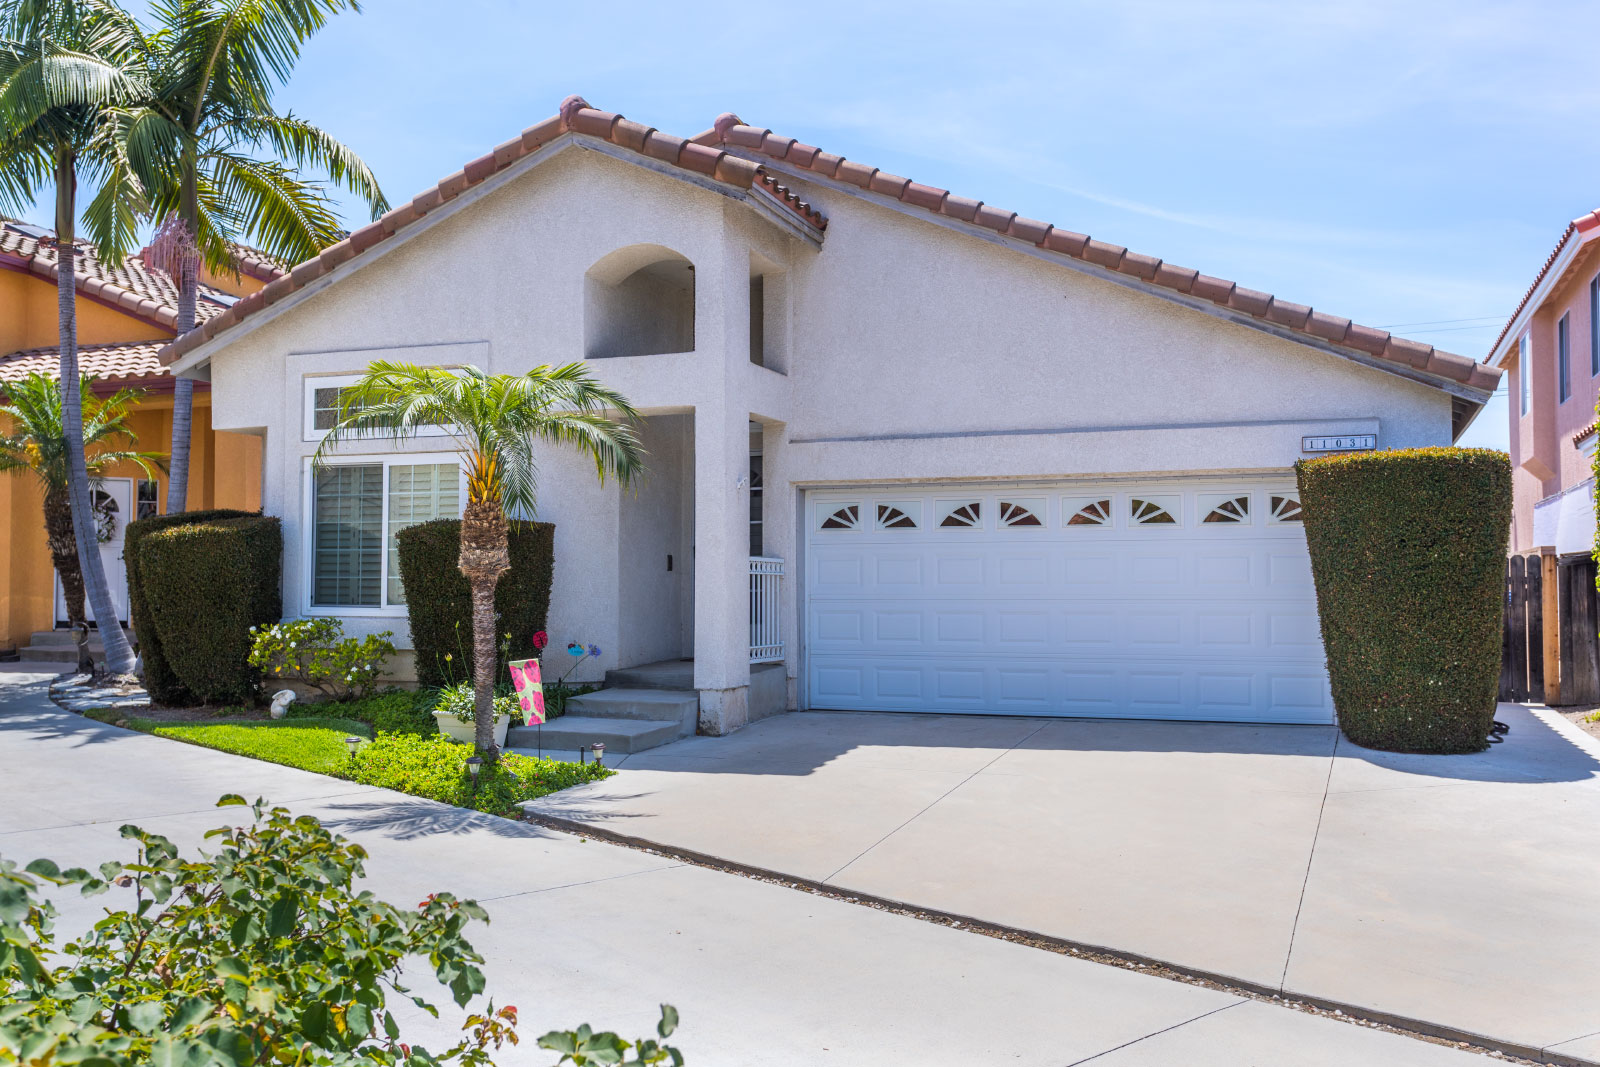 Property For Sale In Whittier Ca